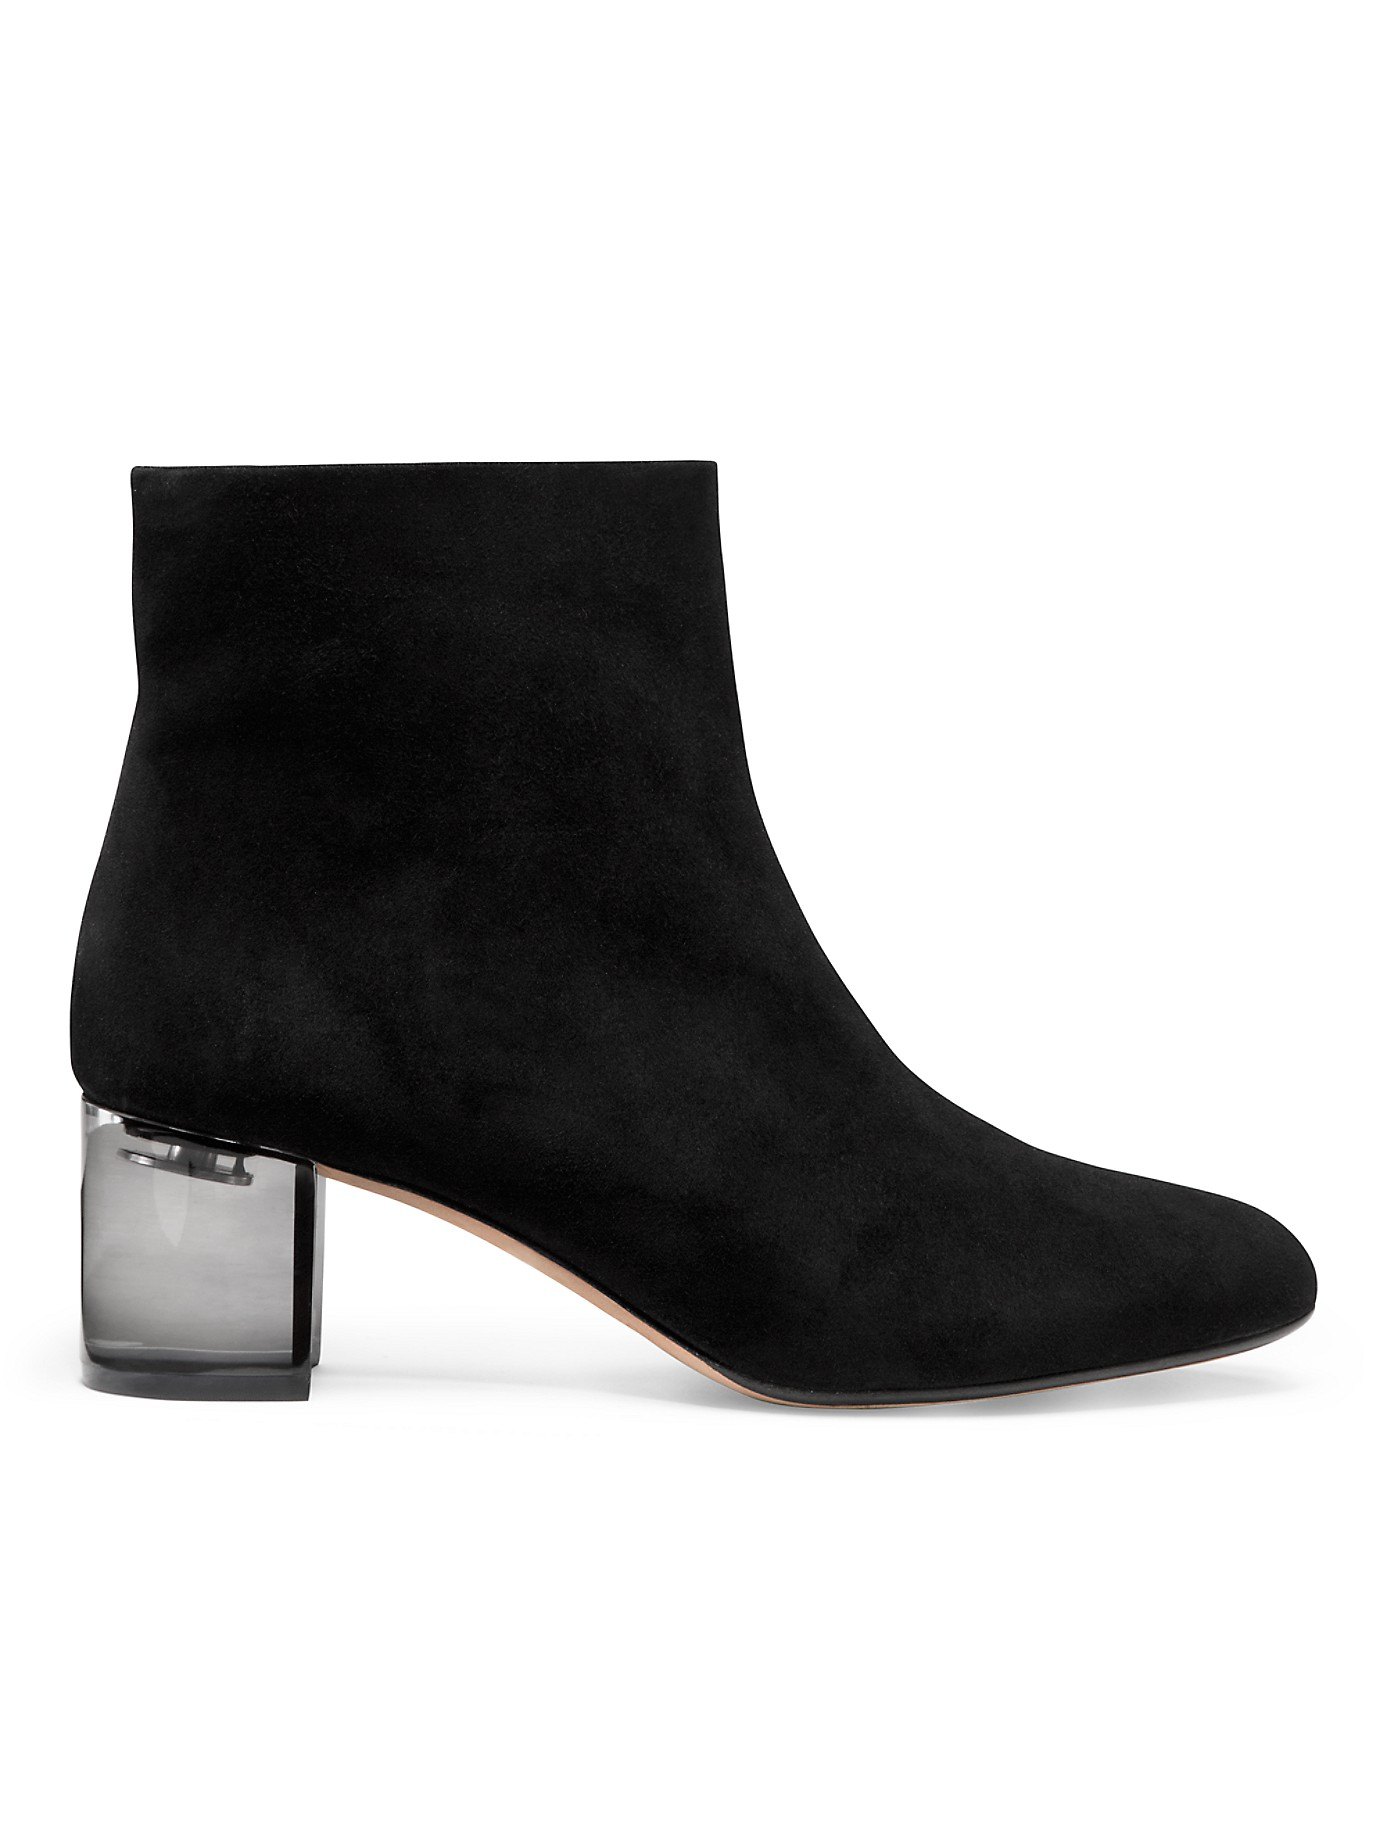 Calvin Klein Collection Suede Ankle Boots popular cheap latest collections Lifow6B6g2